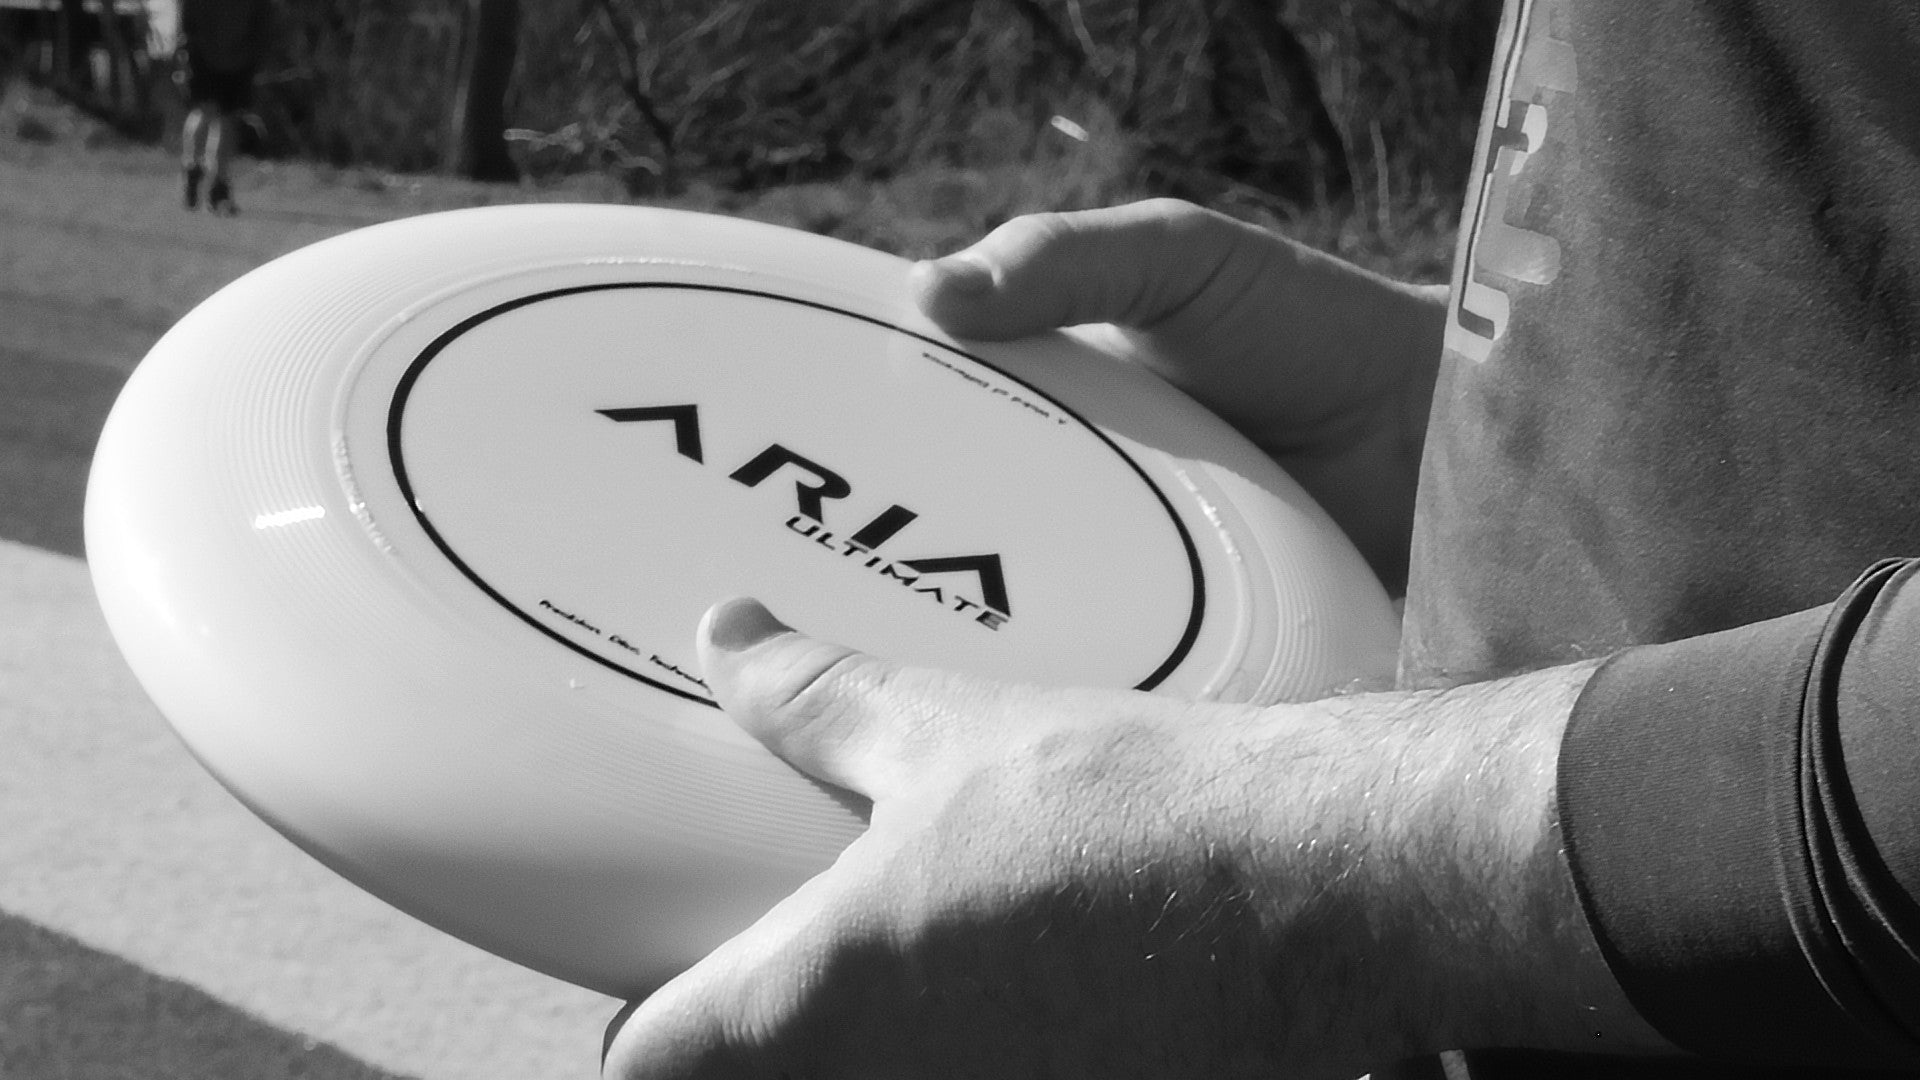 ARIA ultimate disc held with 2 hands